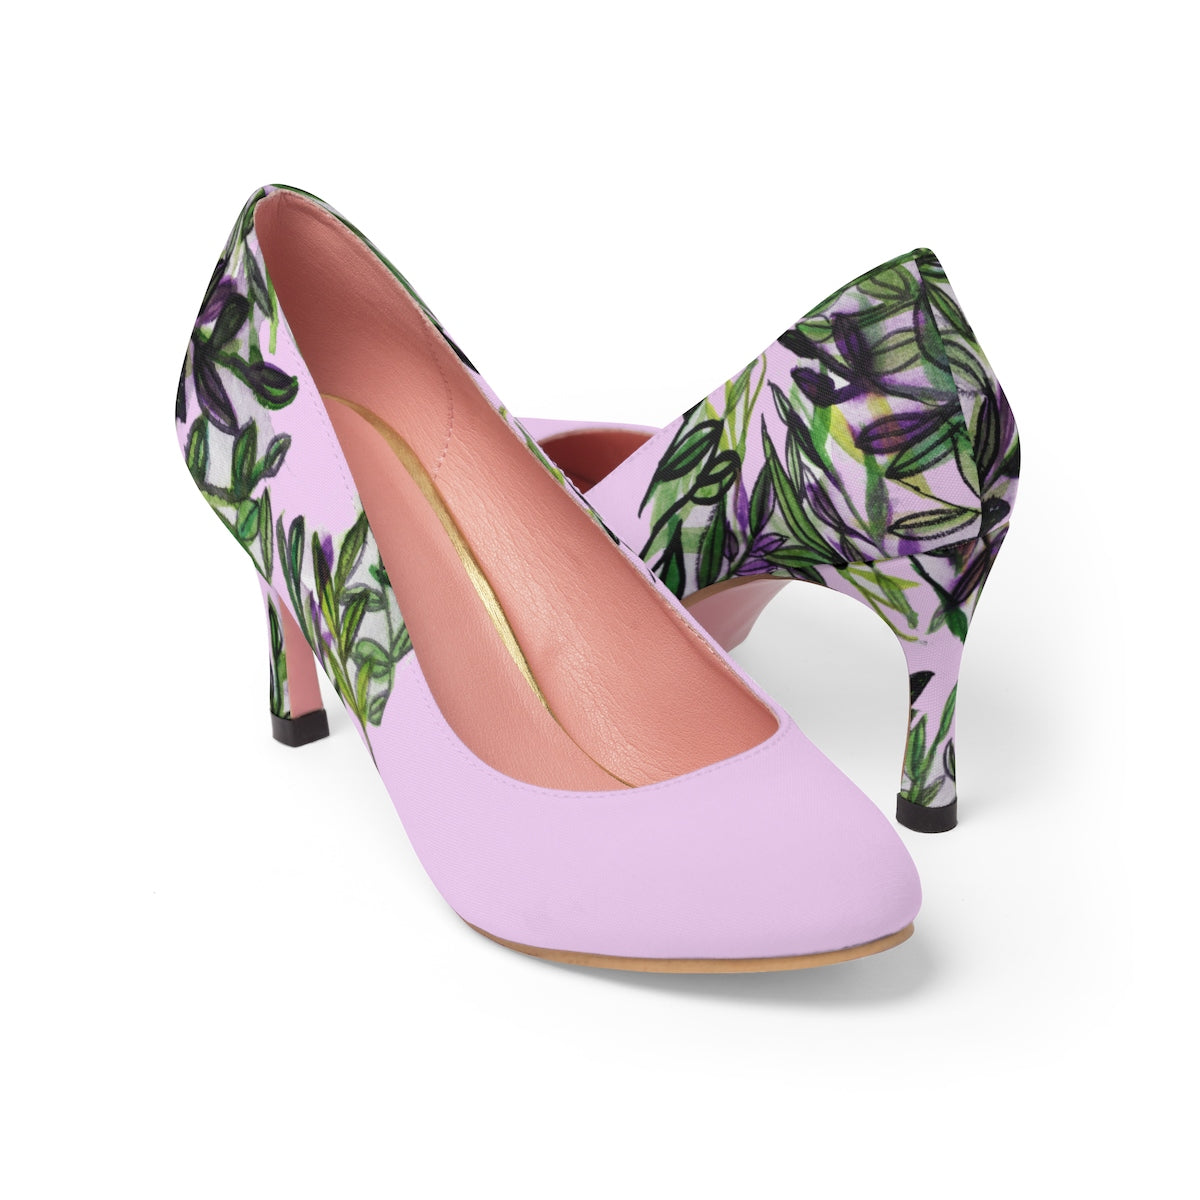 "Pink Green Tropical Leaves Floral Designer Women's 3"" High Heels Shoes (US Size: 5-11)-3 inch Heels-US 7-Heidi Kimura Art LLC"